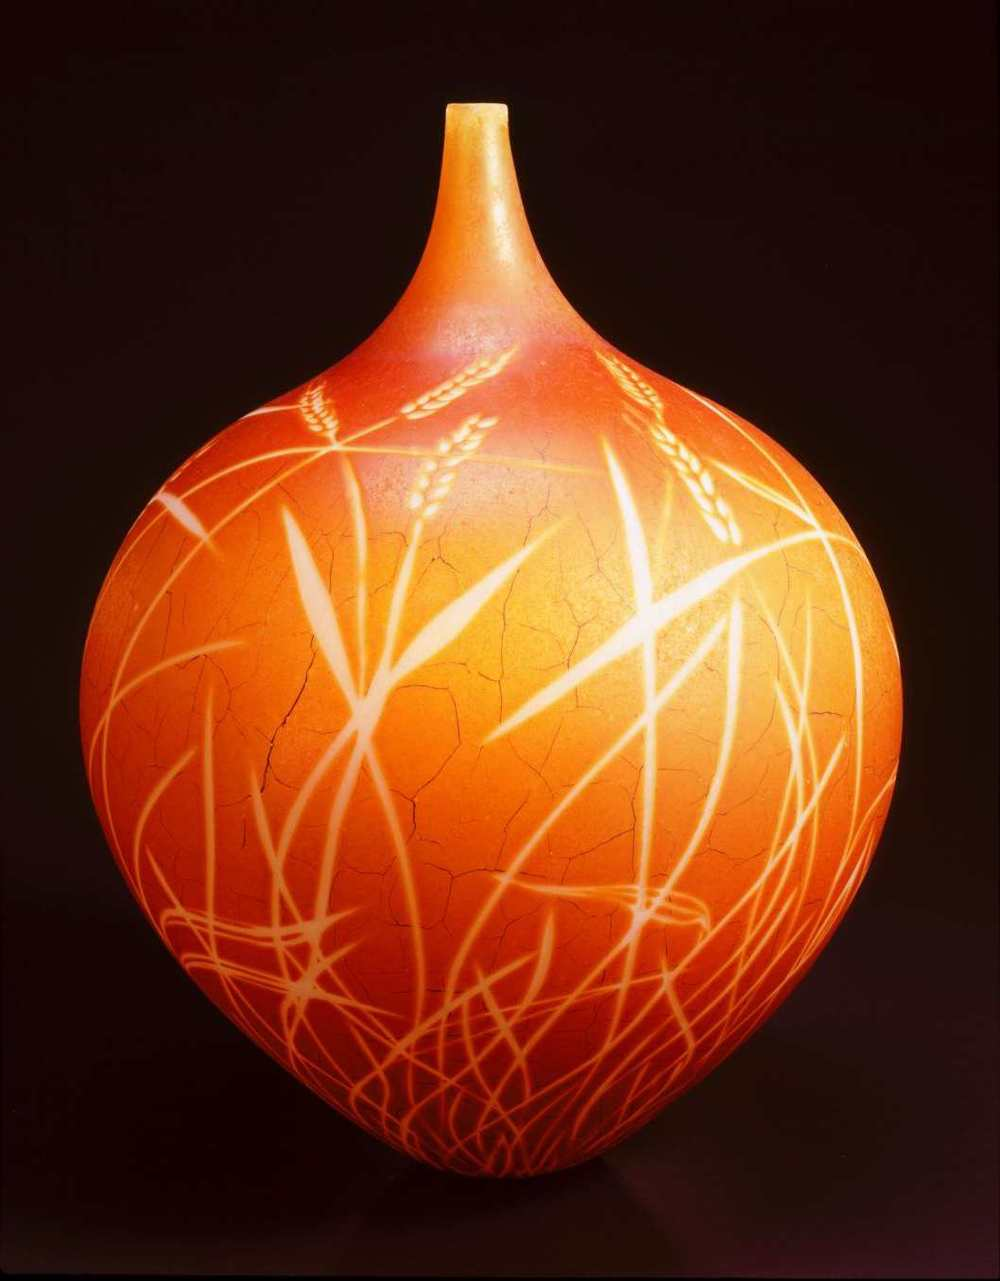 William Morris,  Vase with Grass (Amber)  (2004, glass, 20 1/2 x 15 3/4 x 15 3/4 inches), WM.21